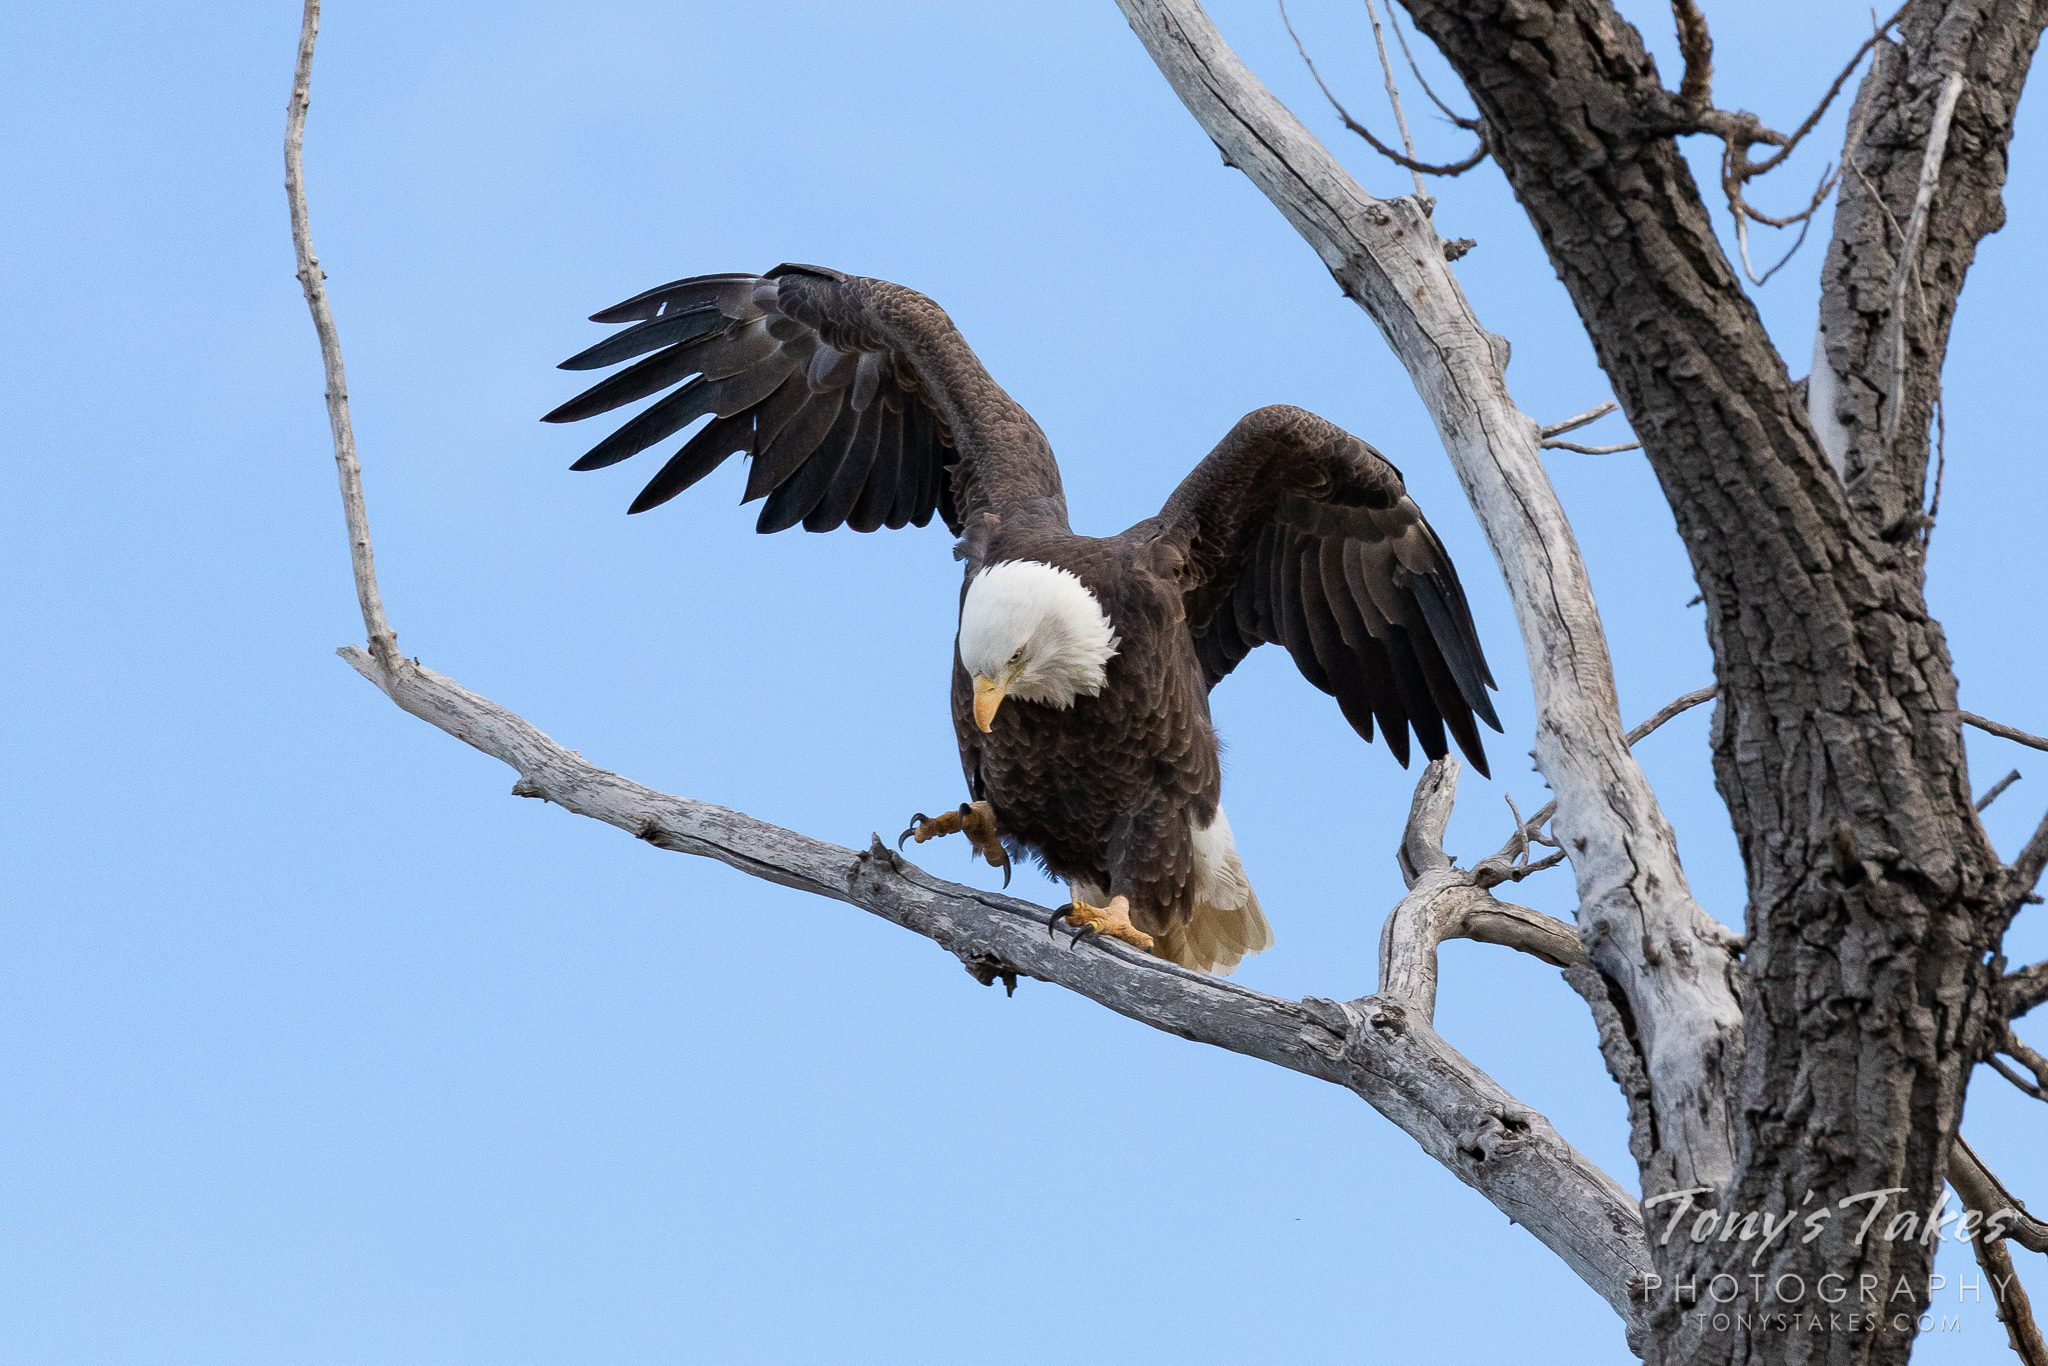 A bald eagle rearranges on its perch. (© Tony's Takes)